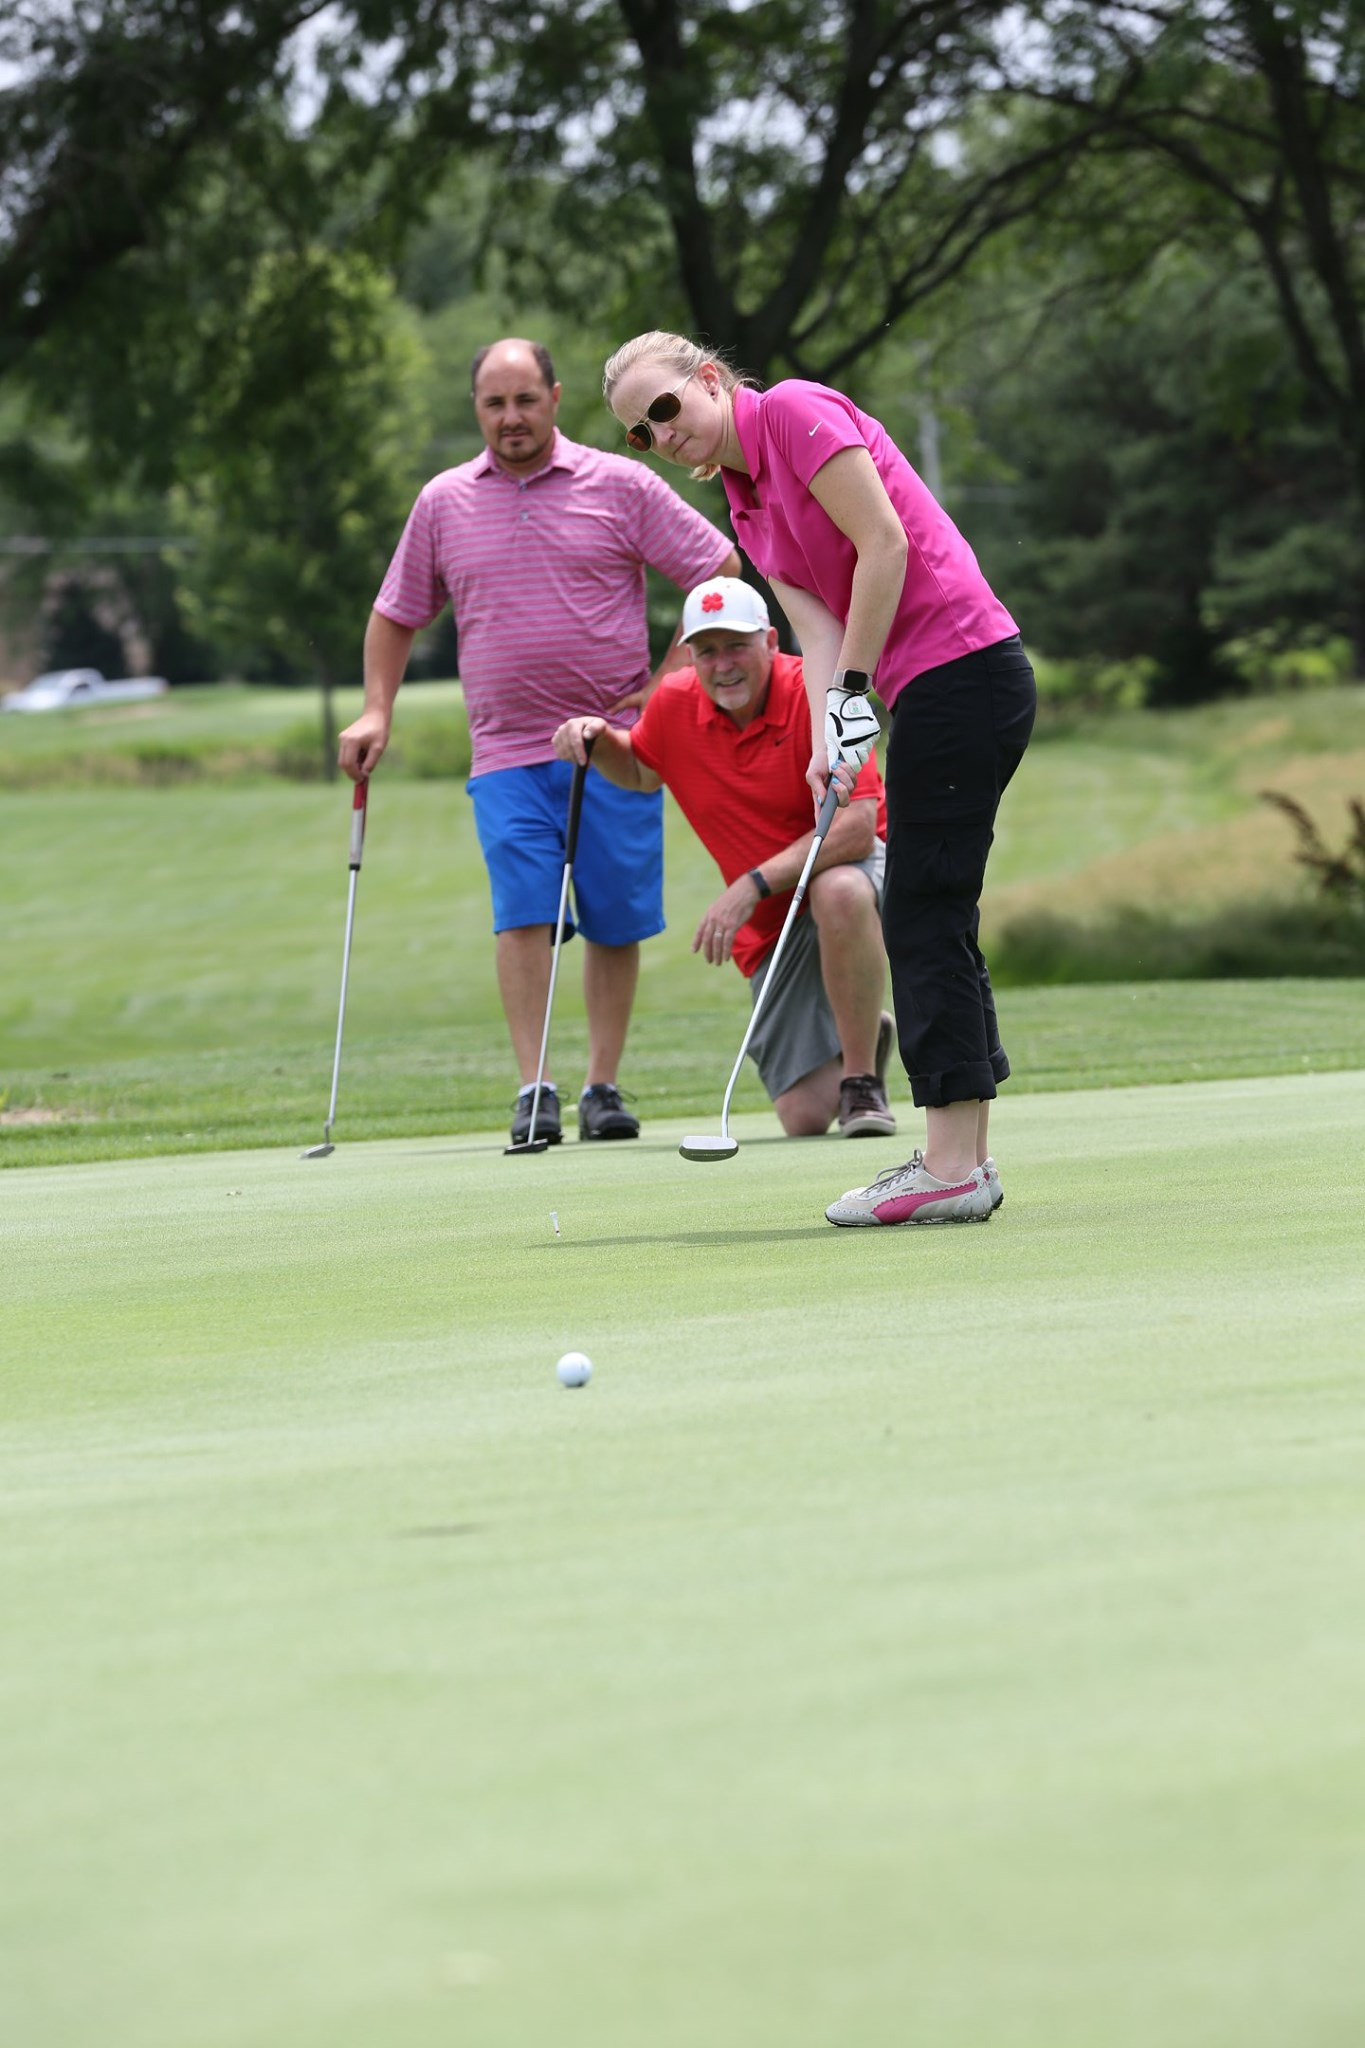 golfers at business on the green